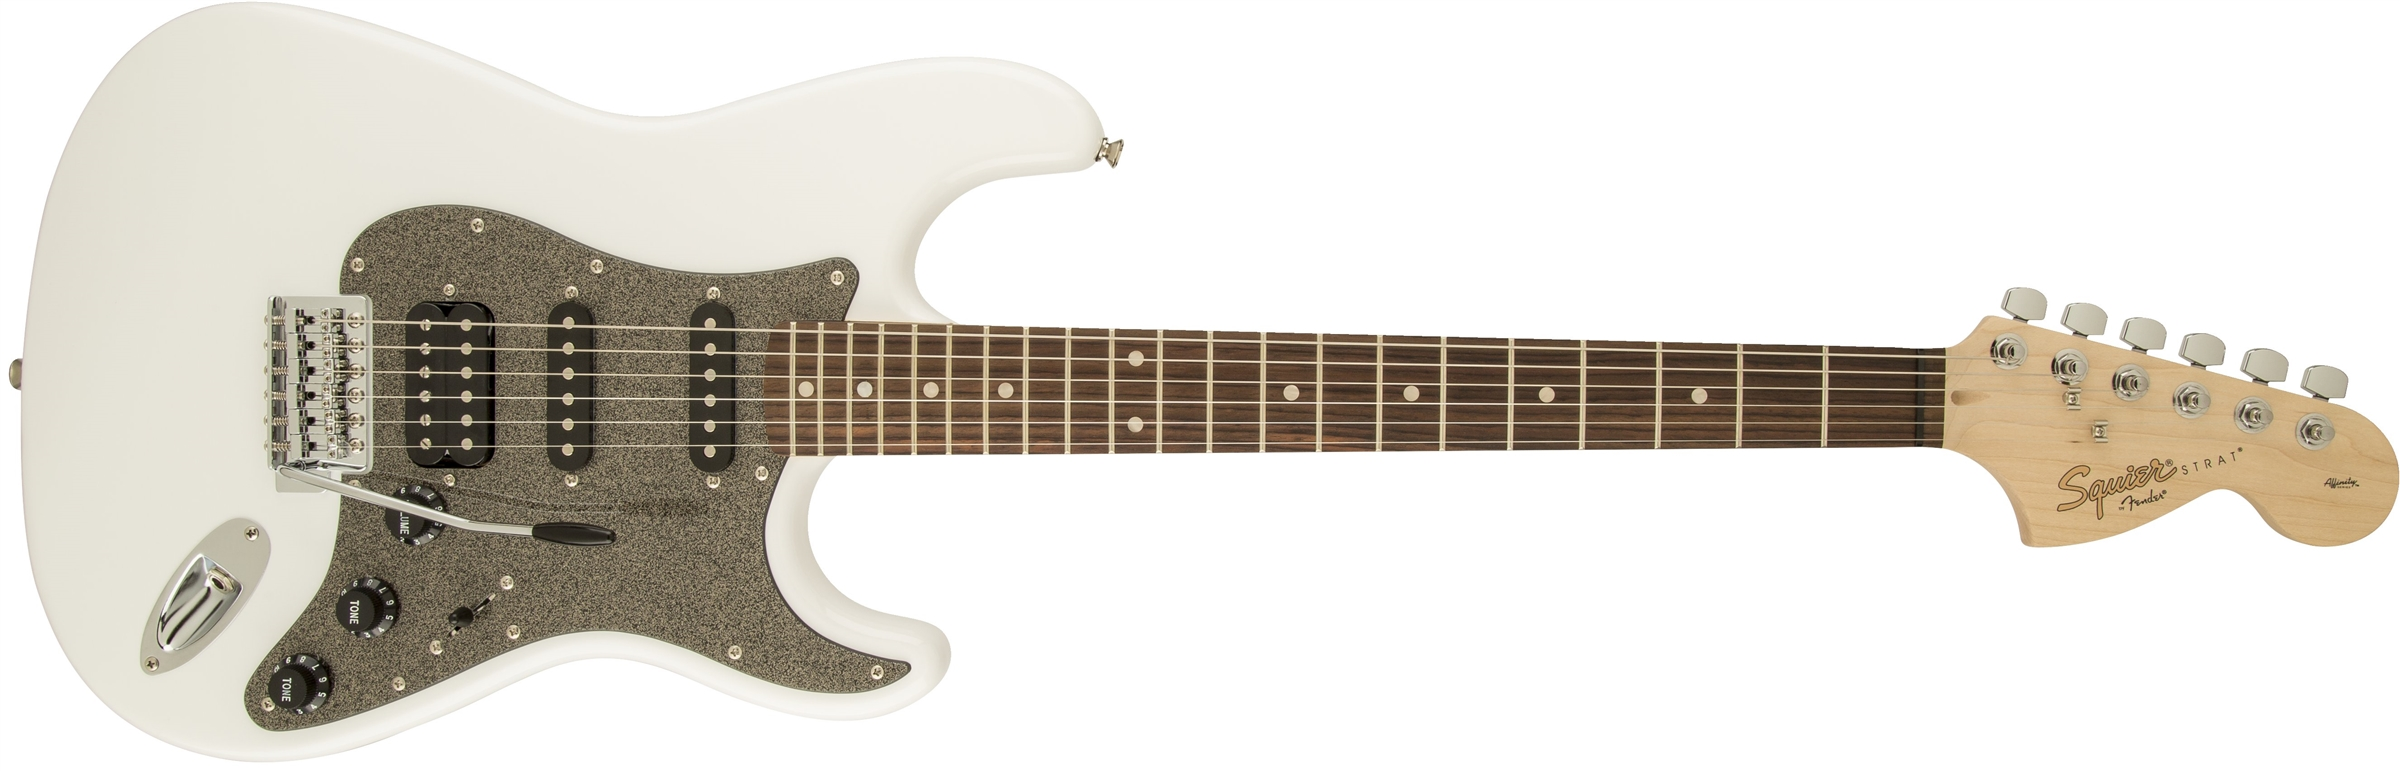 affinity series stratocaster hss squier electric guitars. Black Bedroom Furniture Sets. Home Design Ideas